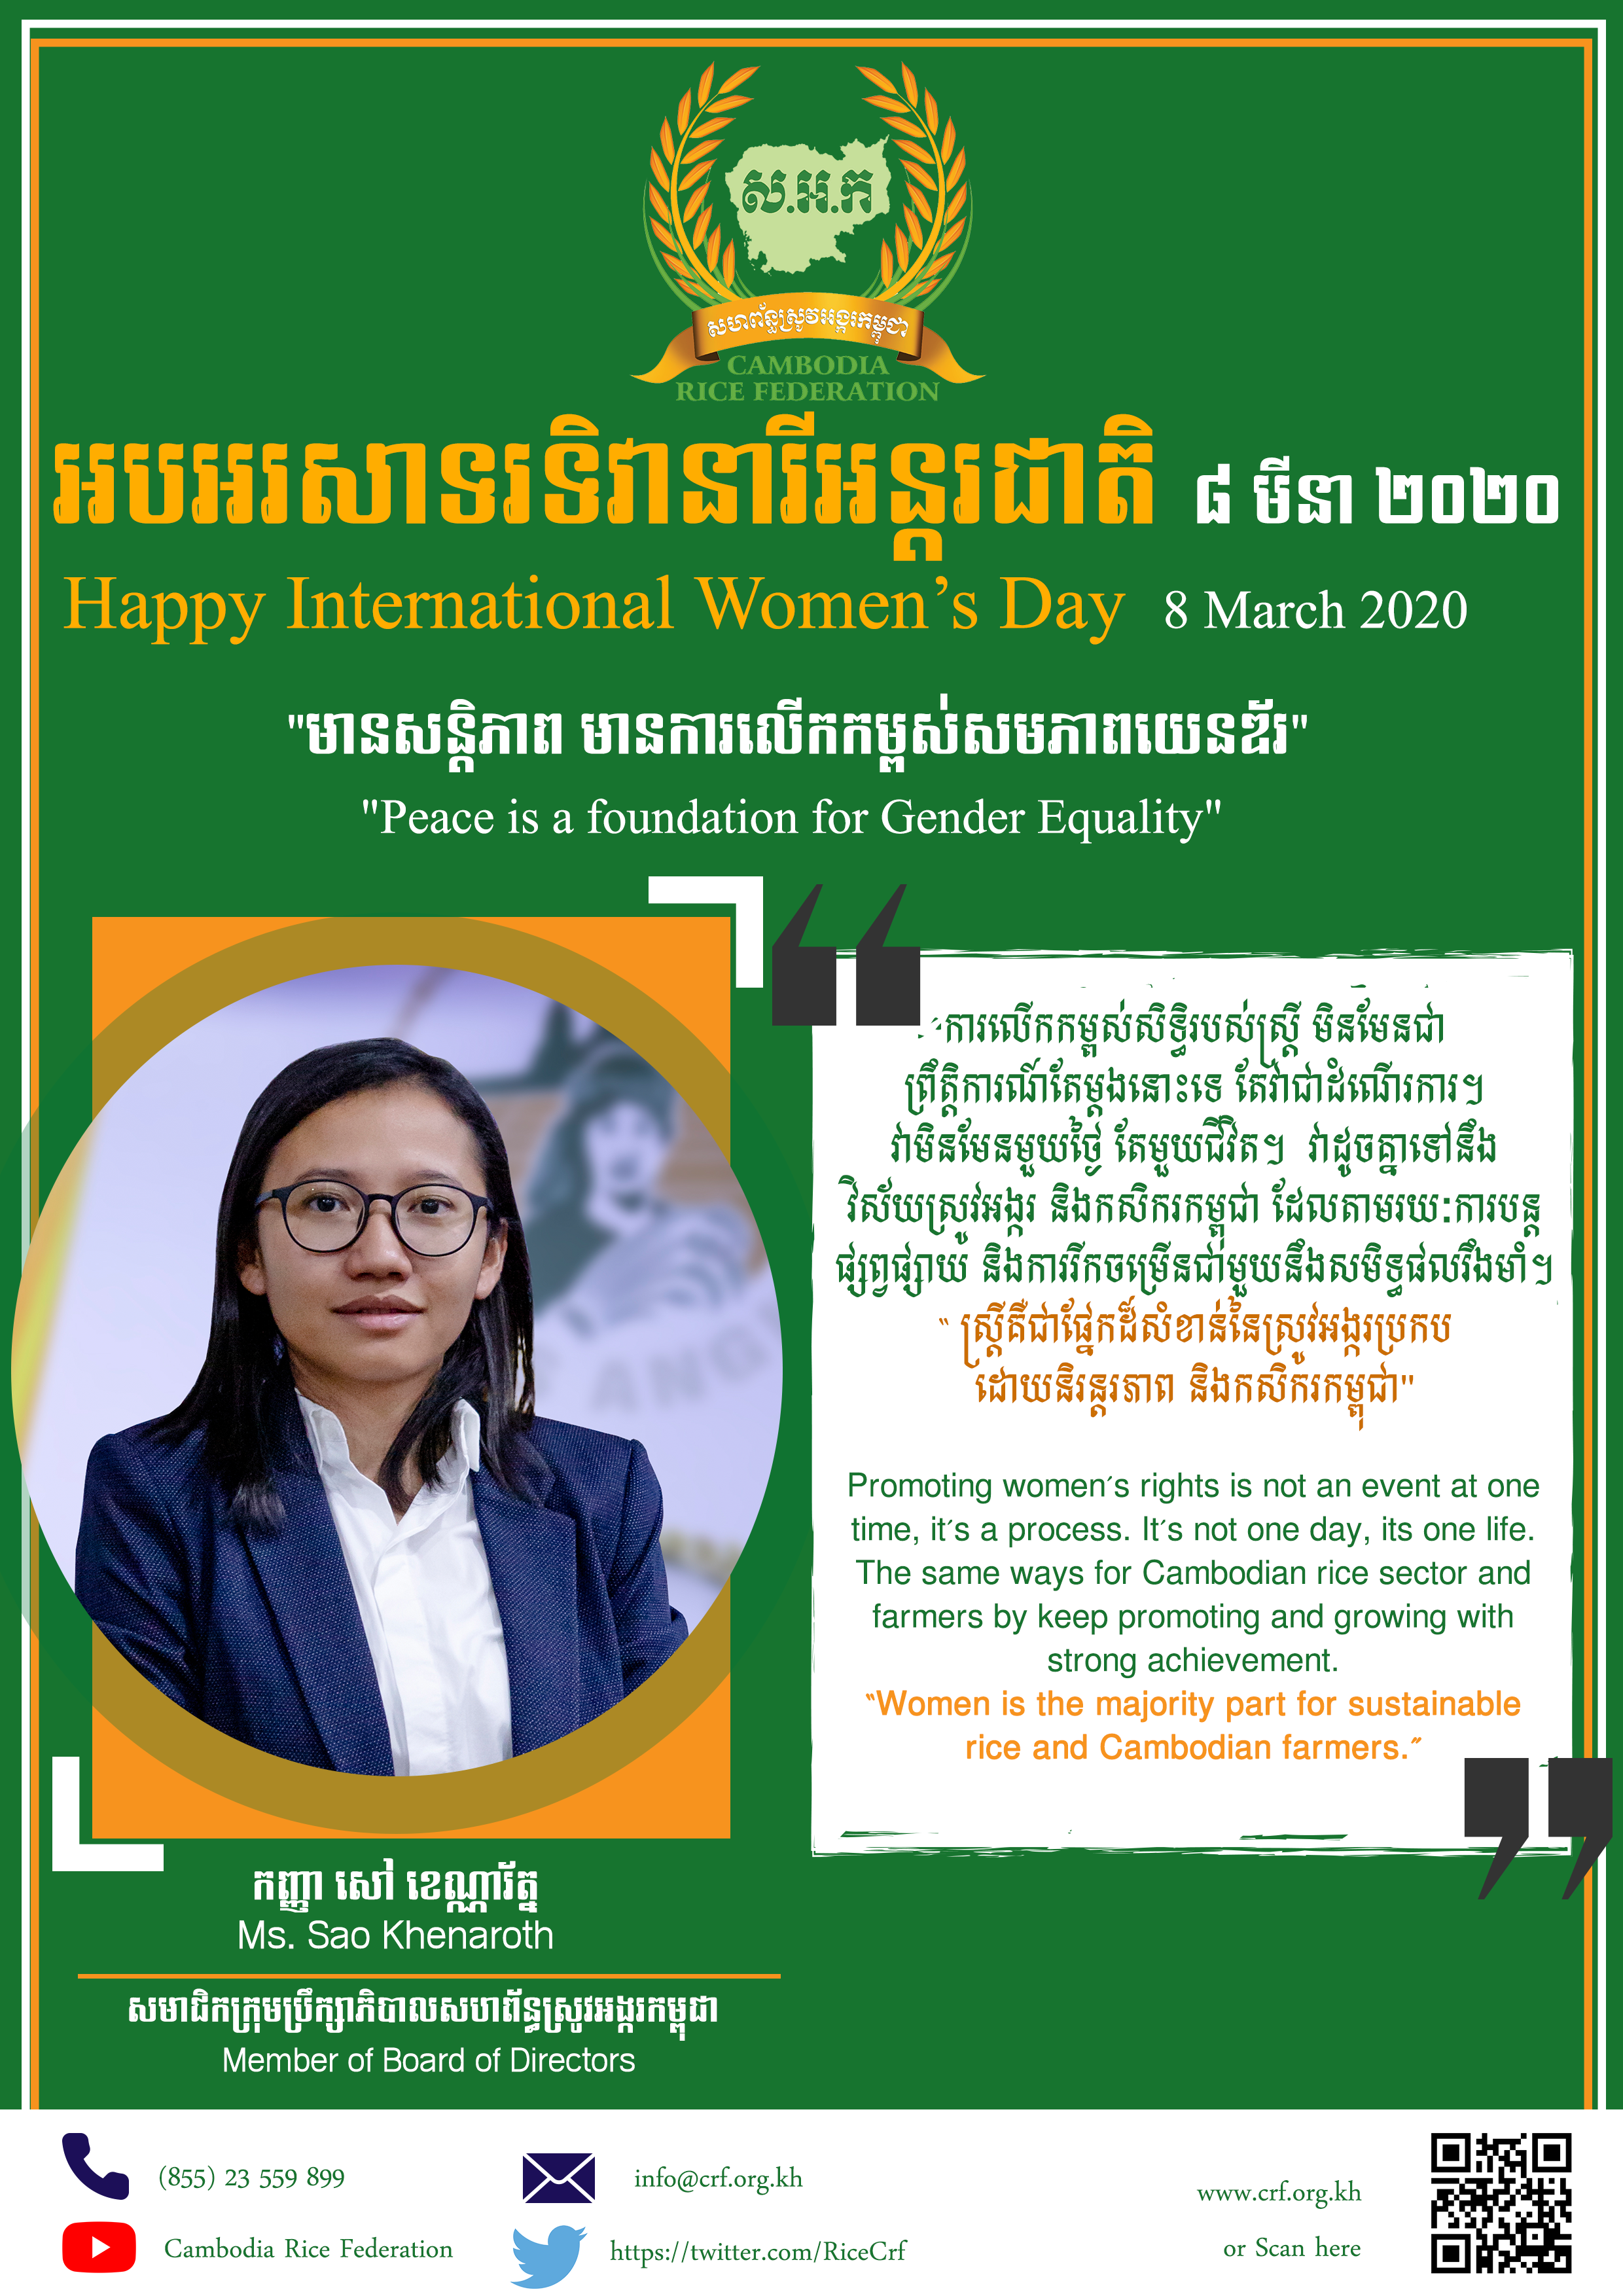 Happy International Women's Day-Ms. Sao Khenaroth